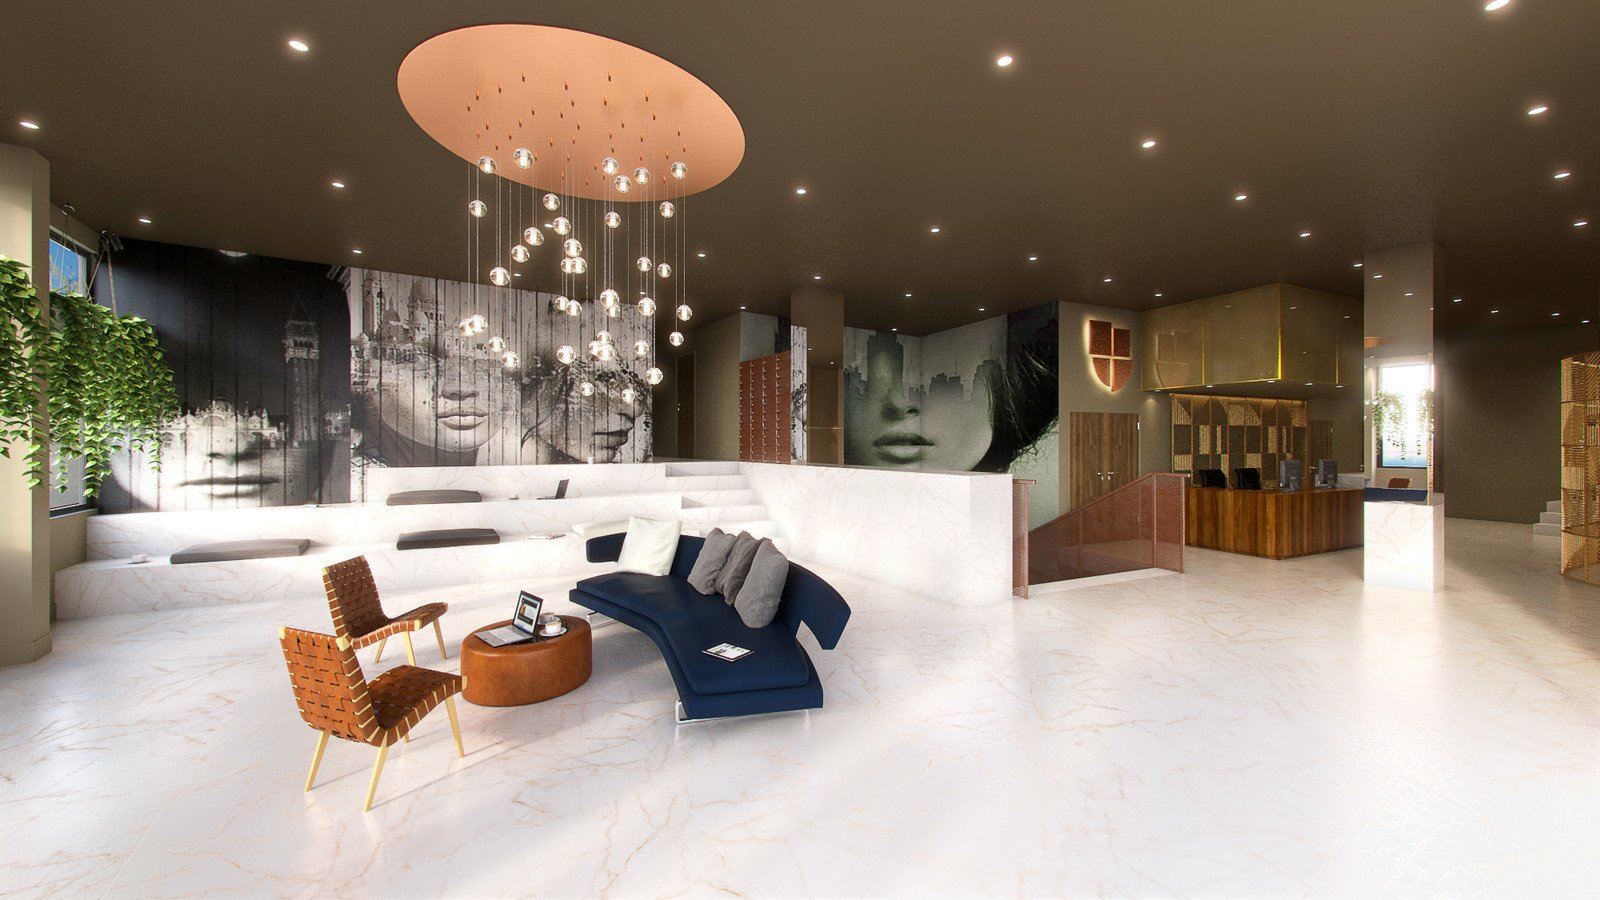 Living Room, Sofa, Chair, Pendant Lighting, and Recessed Lighting  Photo 3 of 8 in The City of Lisbon Inspired the Design of This Surprisingly Luxurious Student Residence